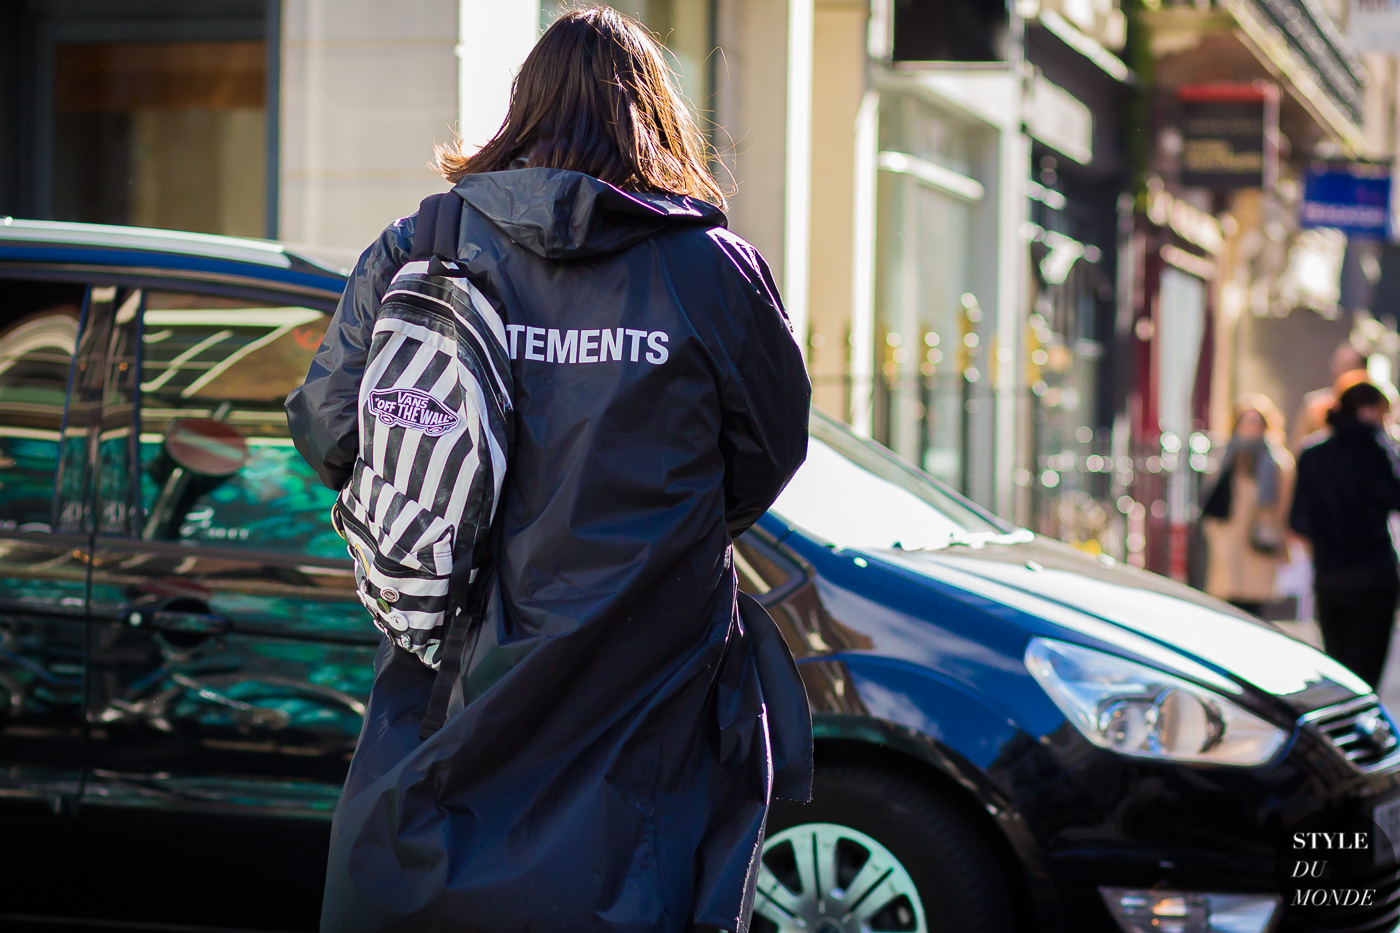 Vetements coat Street Style Street Fashion Streetsnaps by STYLEDUMONDE Street Style Fashion Photography